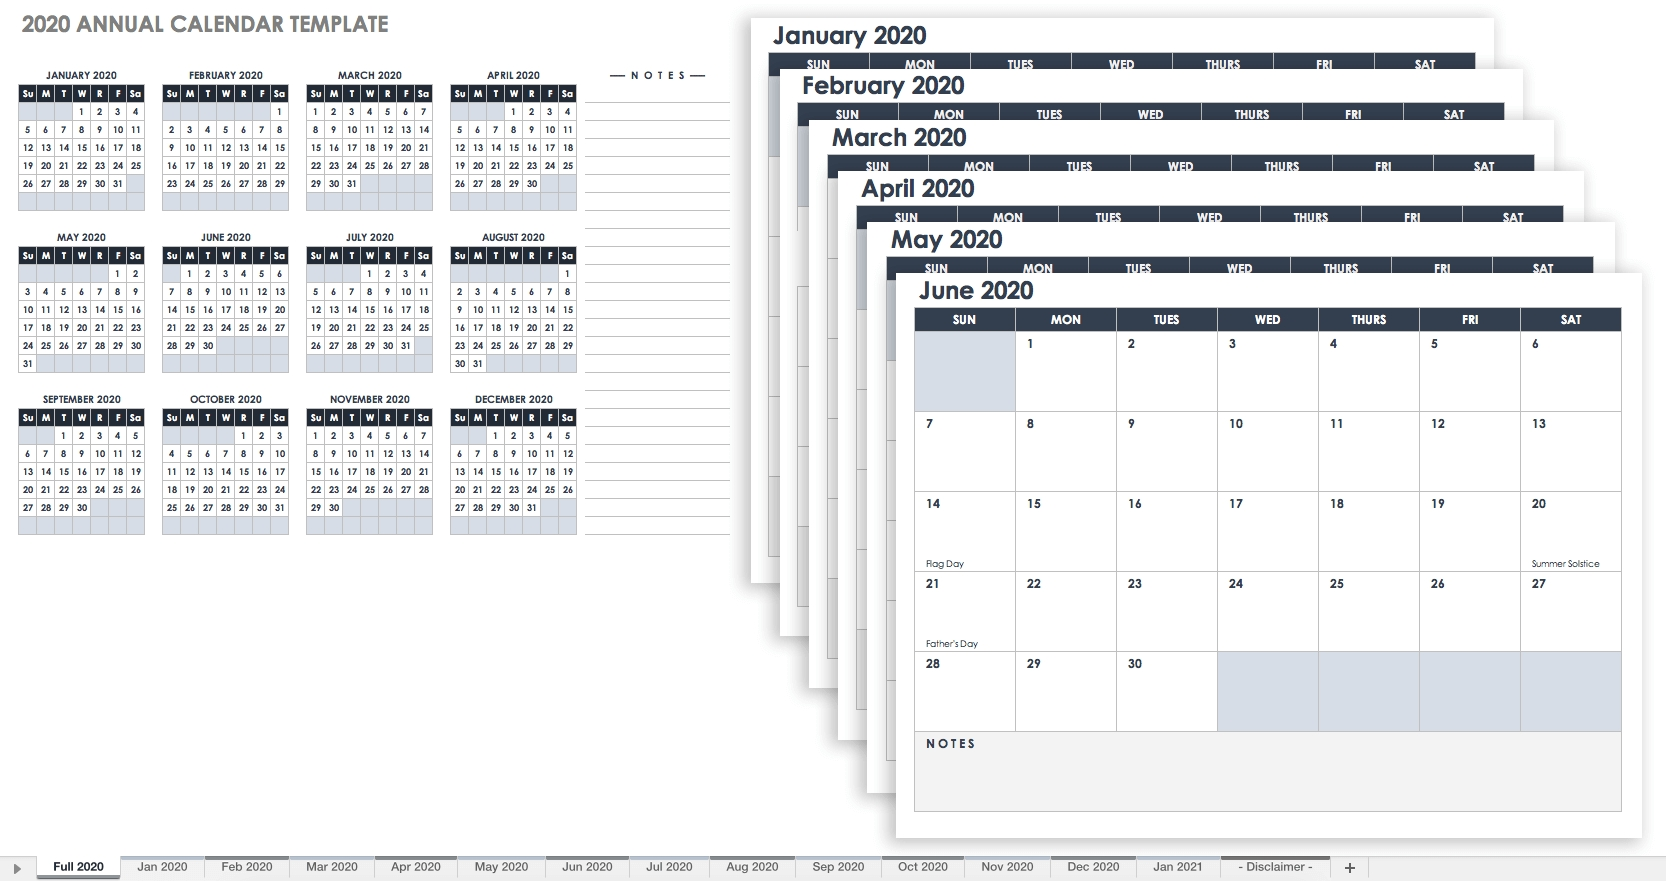 Free Blank Calendar Templates - Smartsheet for Year At A Glance Printable Template